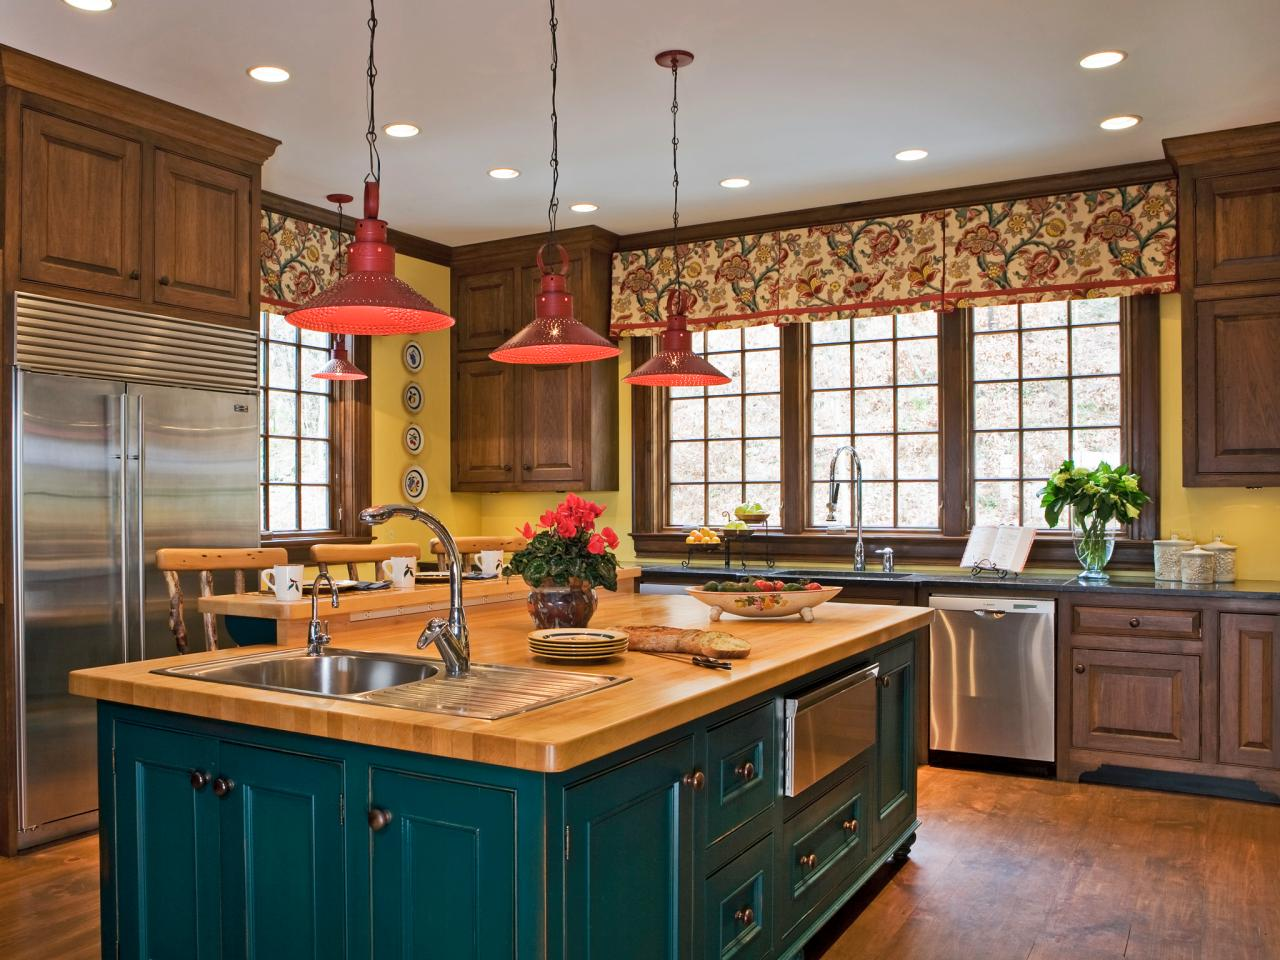 30 colorful kitchen design ideas from hgtv kitchen ideas design with cabinets islands - Kitchen island color ideas ...